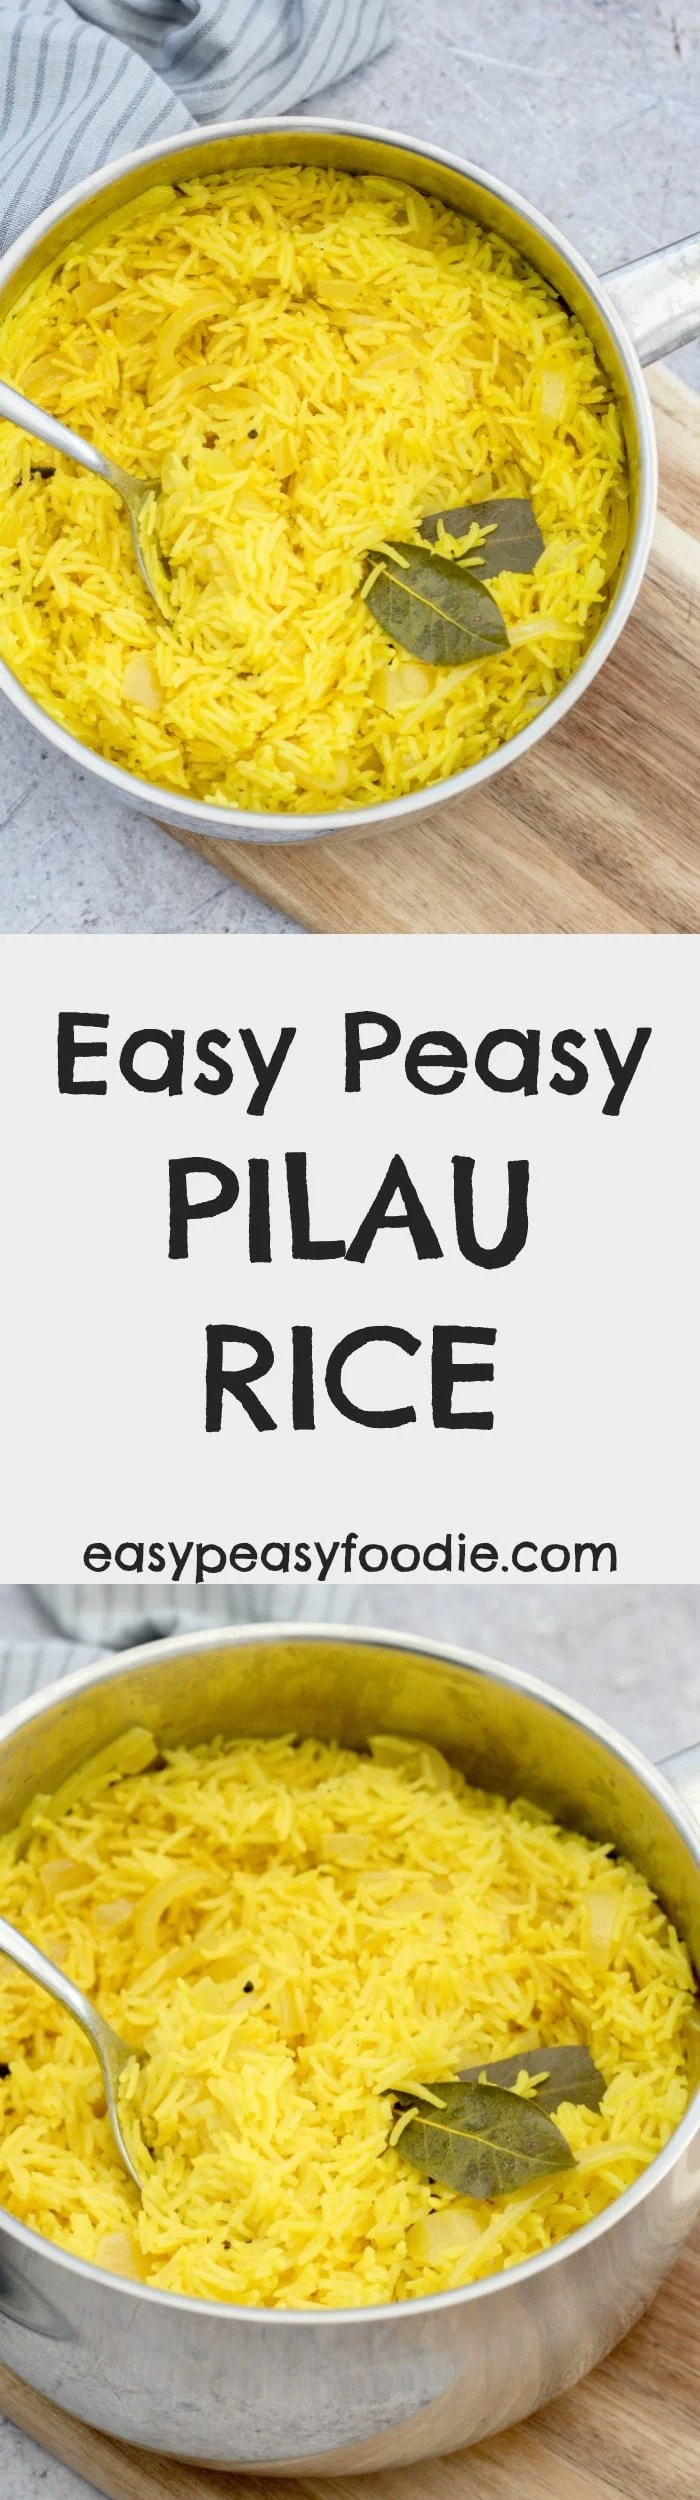 Love pilau rice, but always thought it would be too complicated to make at home? Think again! My Easy Peasy Pilau Rice is super quick and simple to make, even more delicious than the shop bought stuff…and best of all, the kids LOVE mummy's yellow rice #pilaurice #indianrice #spicyrice #rice #yellowrice #under20minutes #side #sidedish #vegetarian #glutenfree #easyrecipes #easypeasyfoodie #fakeaway